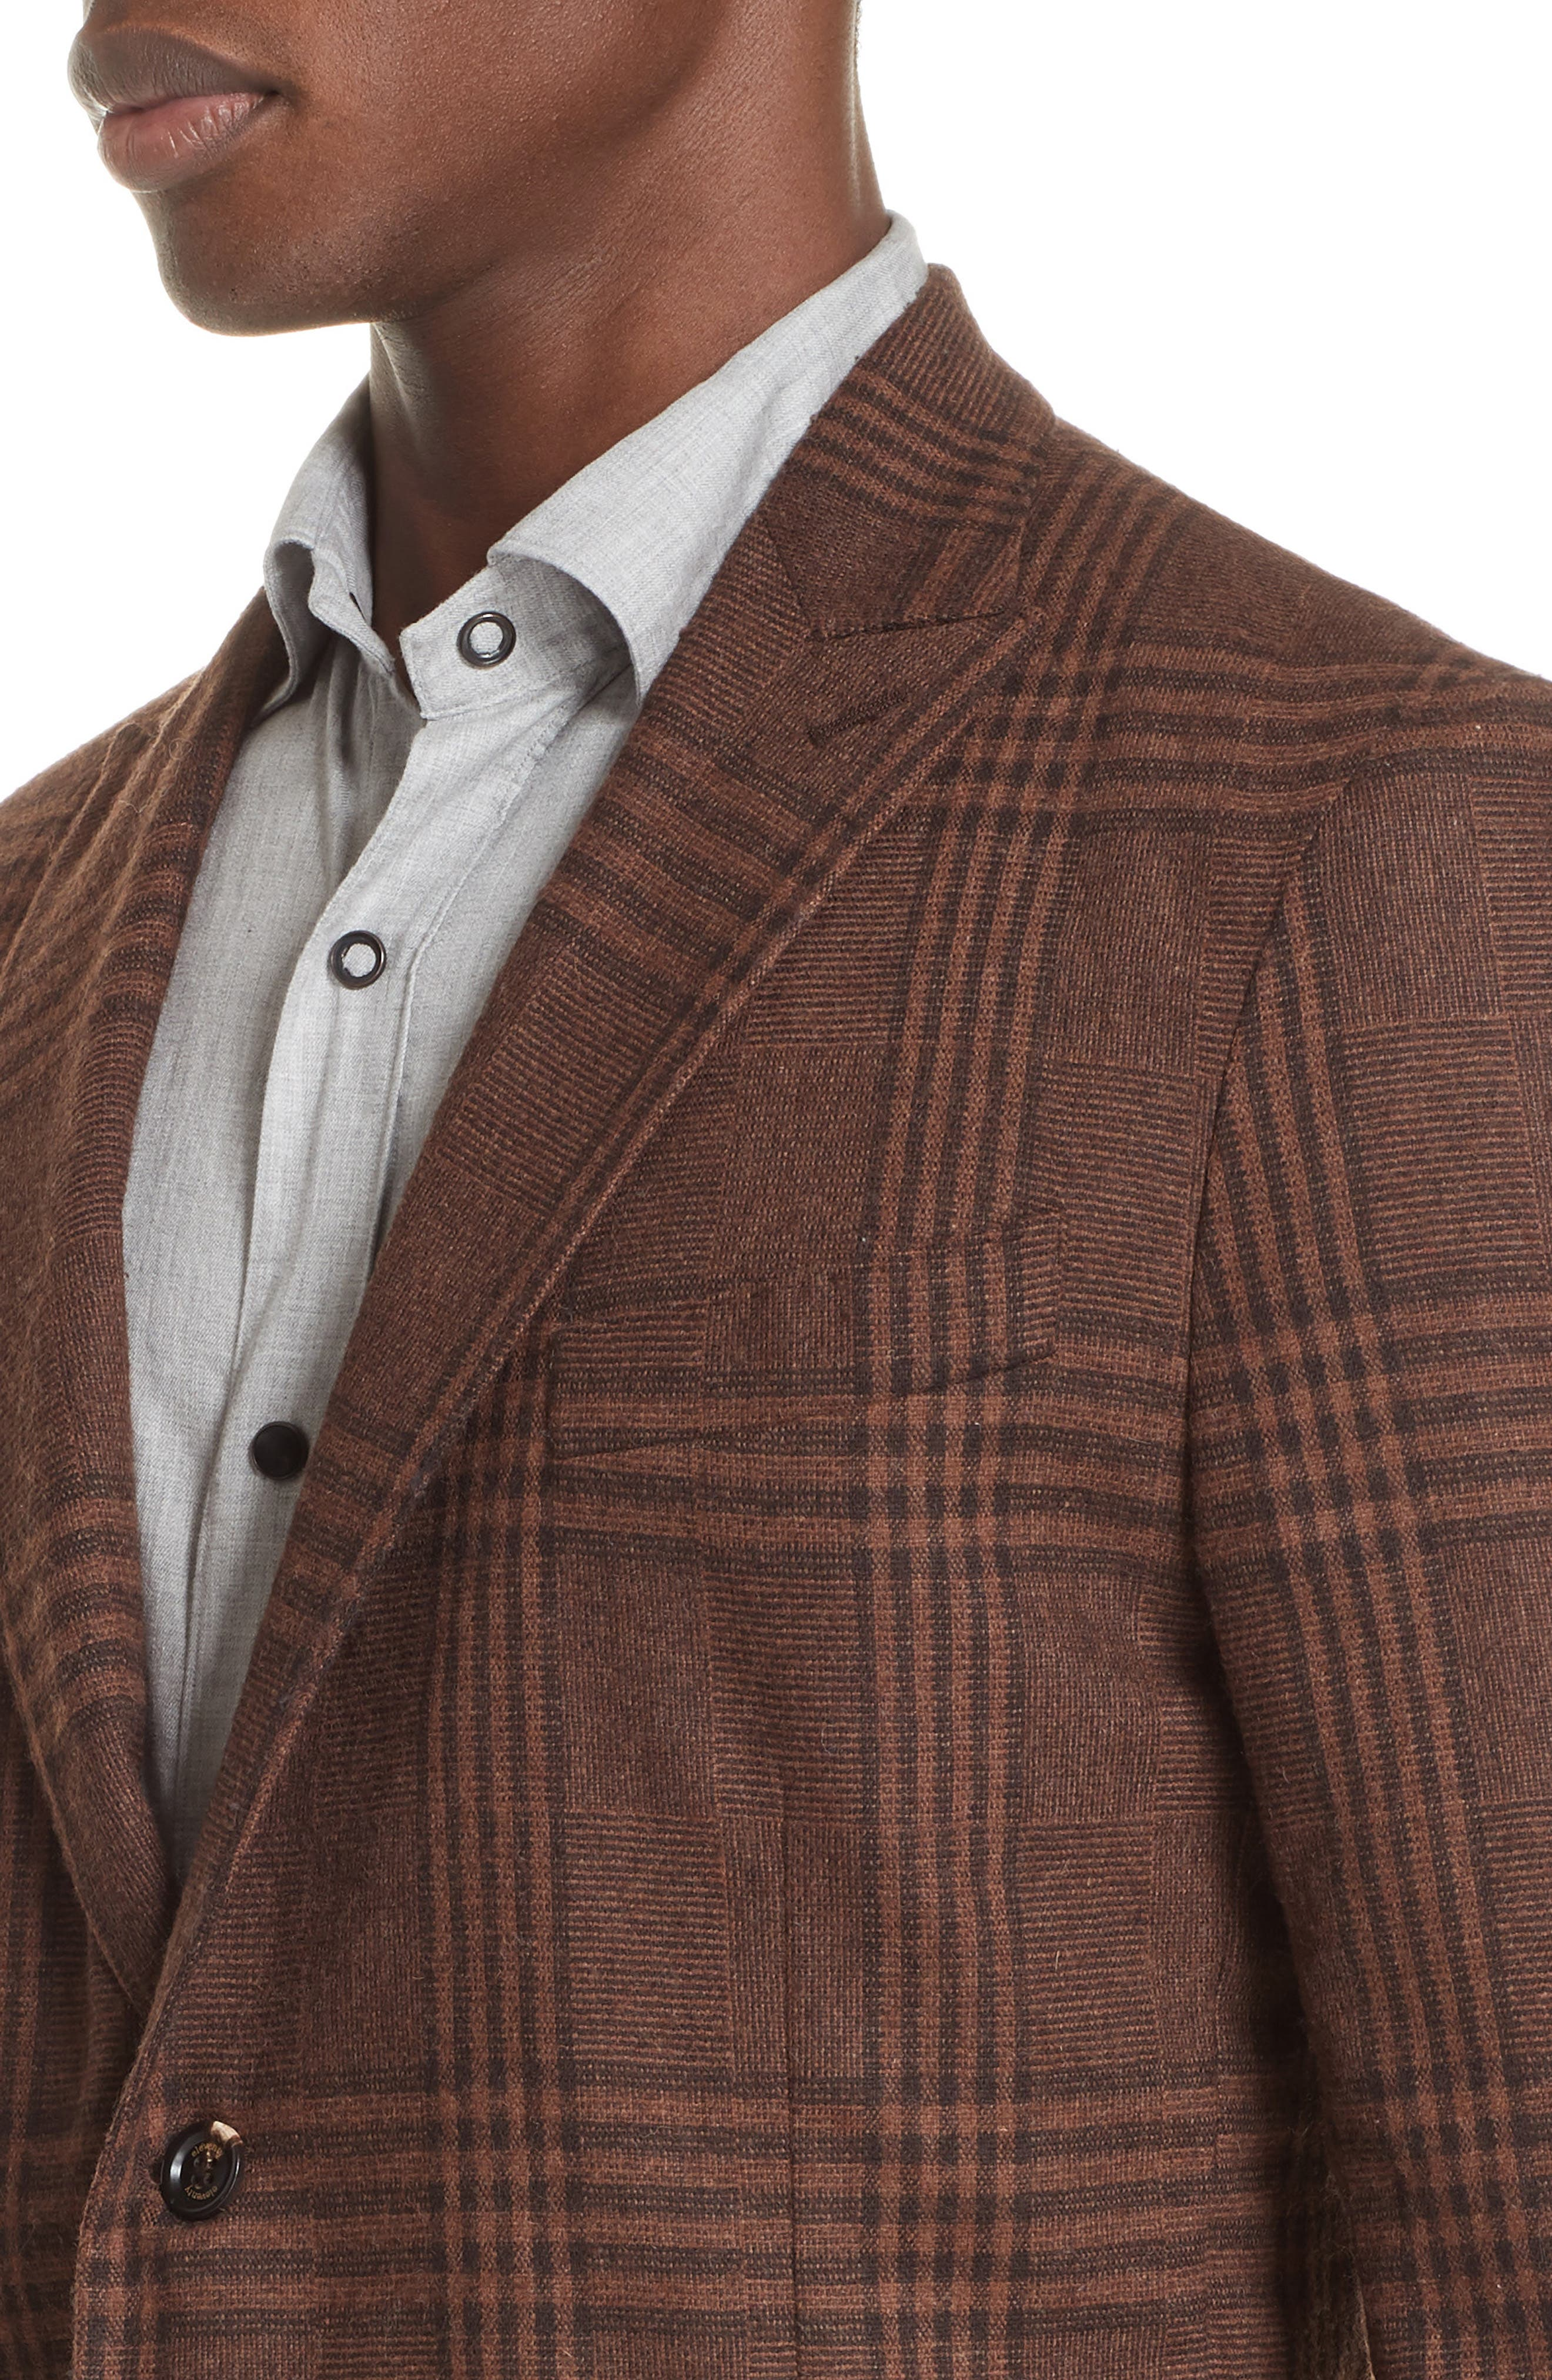 Trim Fit Plaid Stretch Wool Blend Sport Coat,                             Alternate thumbnail 4, color,                             BROWN